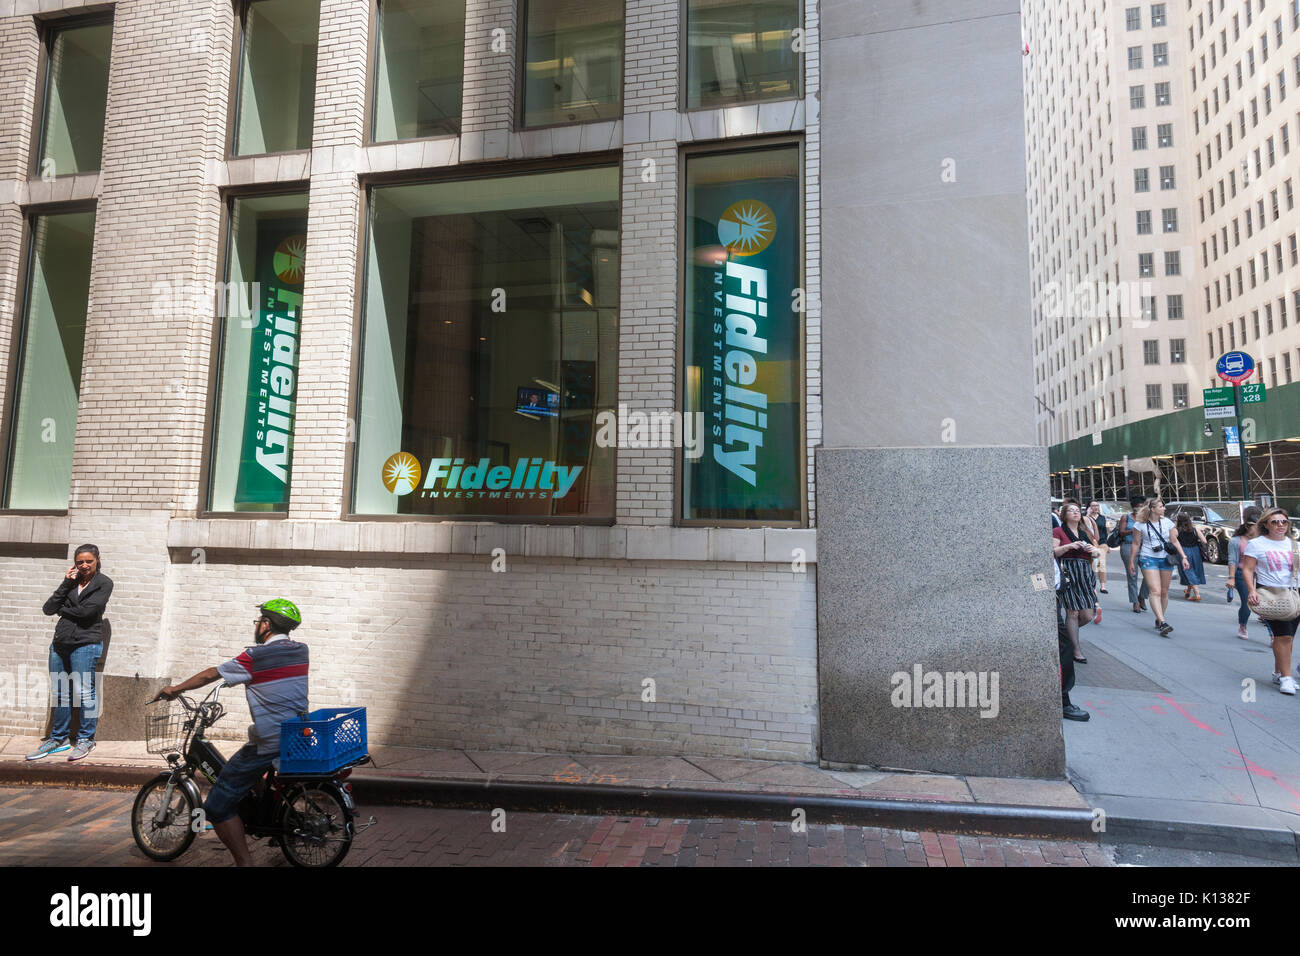 A branch office of Fidelity Investments in Lower Manhattan in New York on Thursday, August 17, 2017. Fidelity Investments is reported to have cut its holdings in Snap Inc. by over half between the period of April to June 2017 as Snap's share have spiraled downward. (© Richard B. Levine) - Stock Image